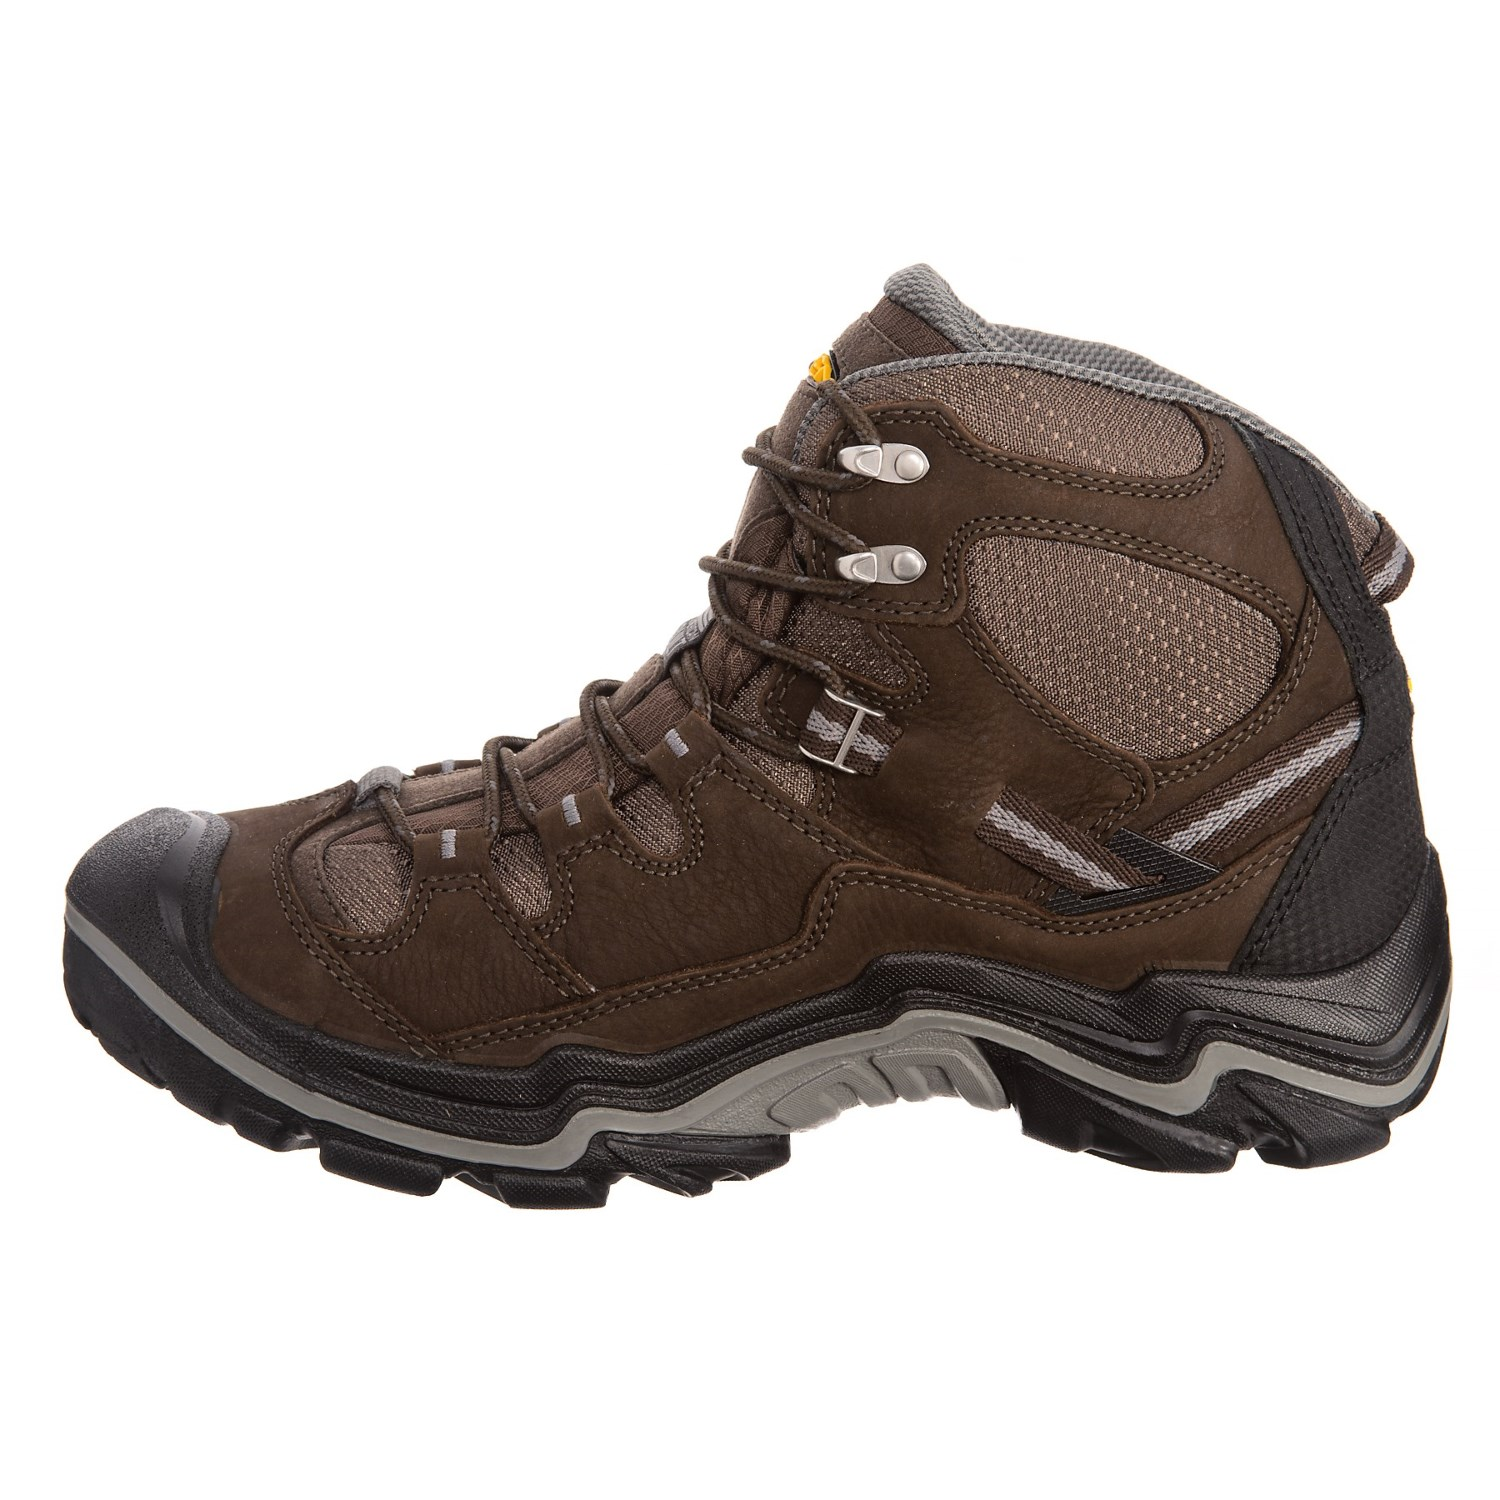 9a8dcfe084c9 Keen Durand Mid Hiking Boots - Waterproof (For Men)